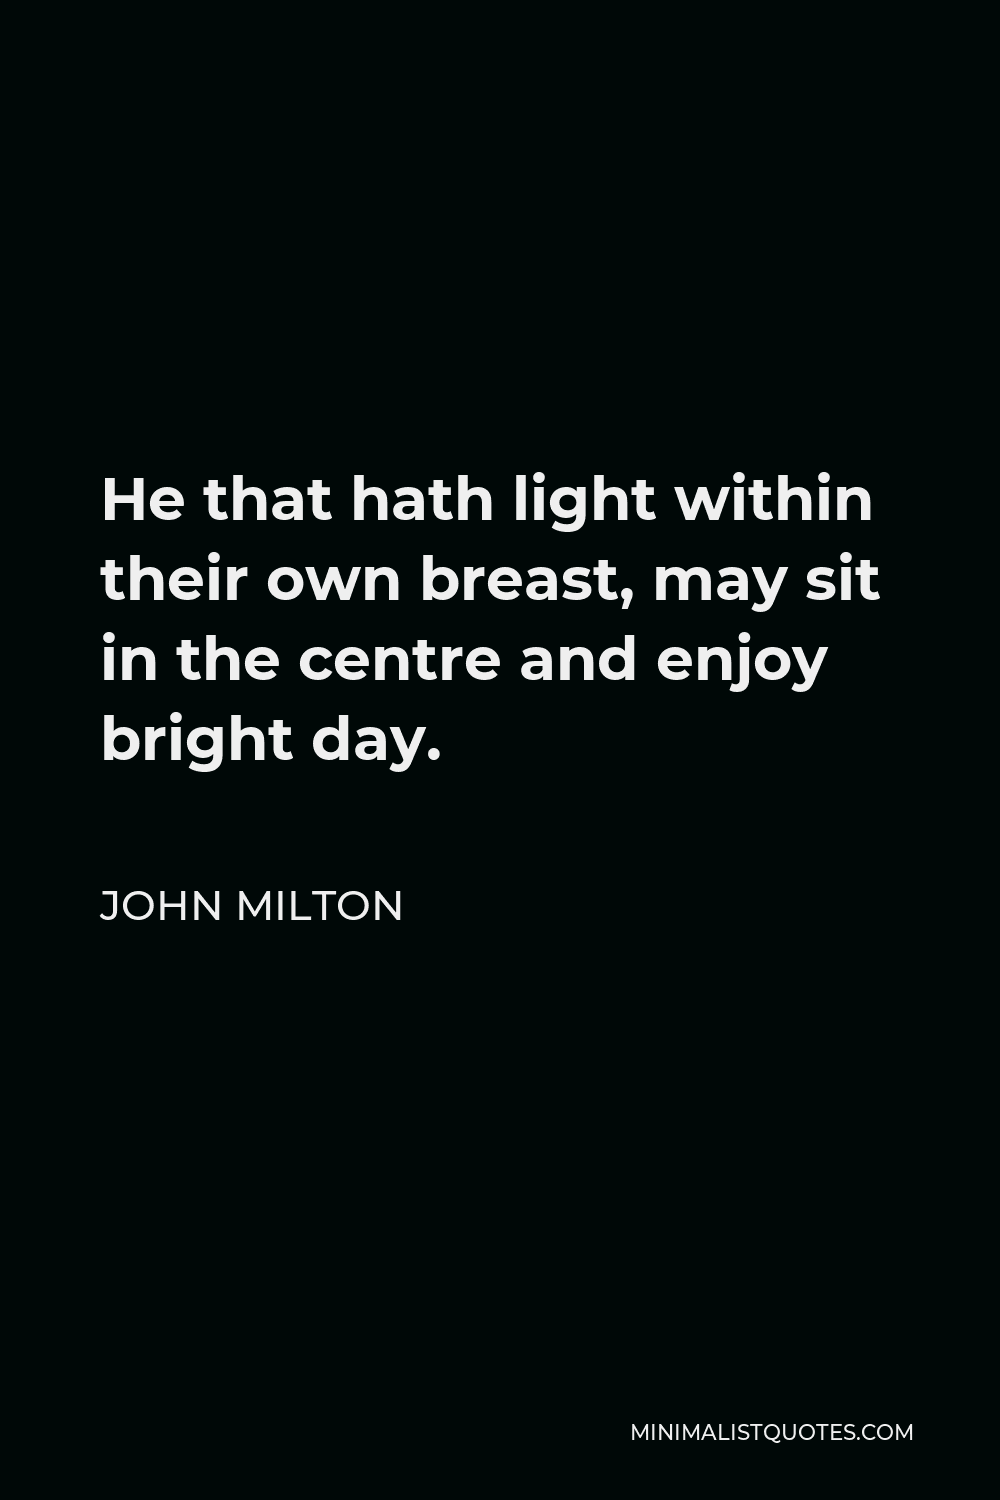 John Milton Quote - He that hath light within their own breast, may sit in the centre and enjoy bright day.